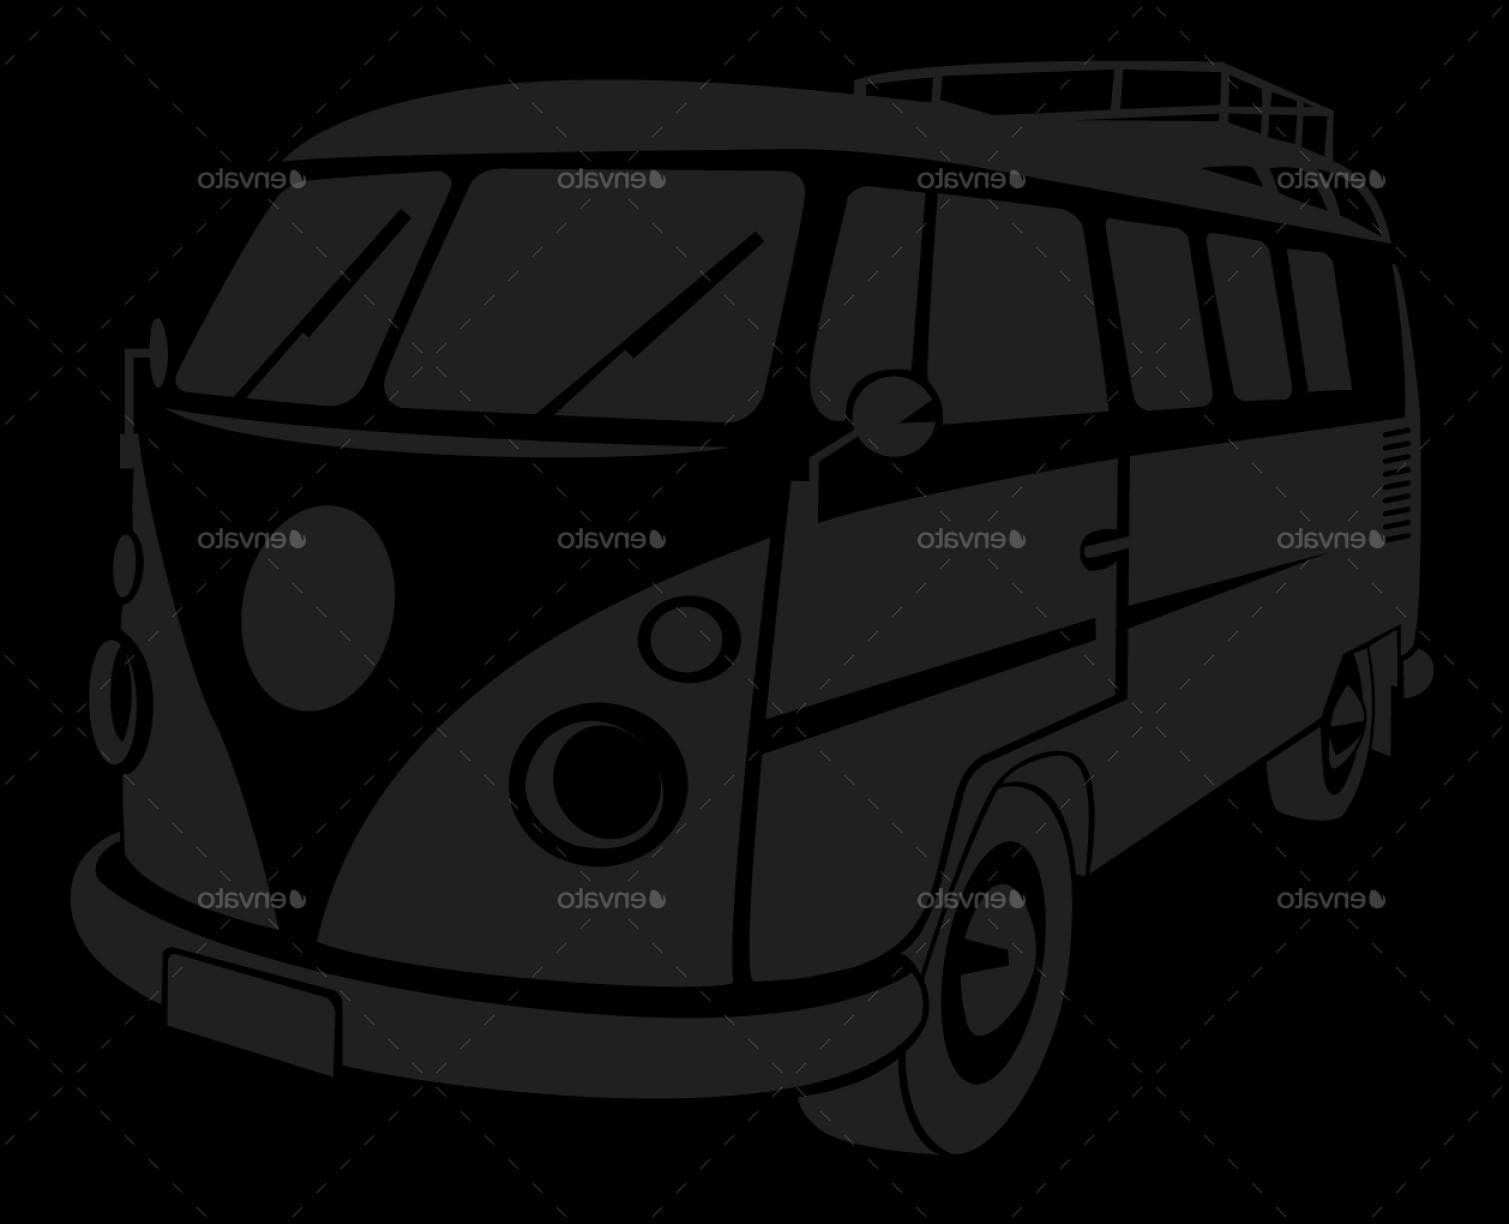 VW Vector Graphic: Top Vw Kombi Main Files Bi Cdr